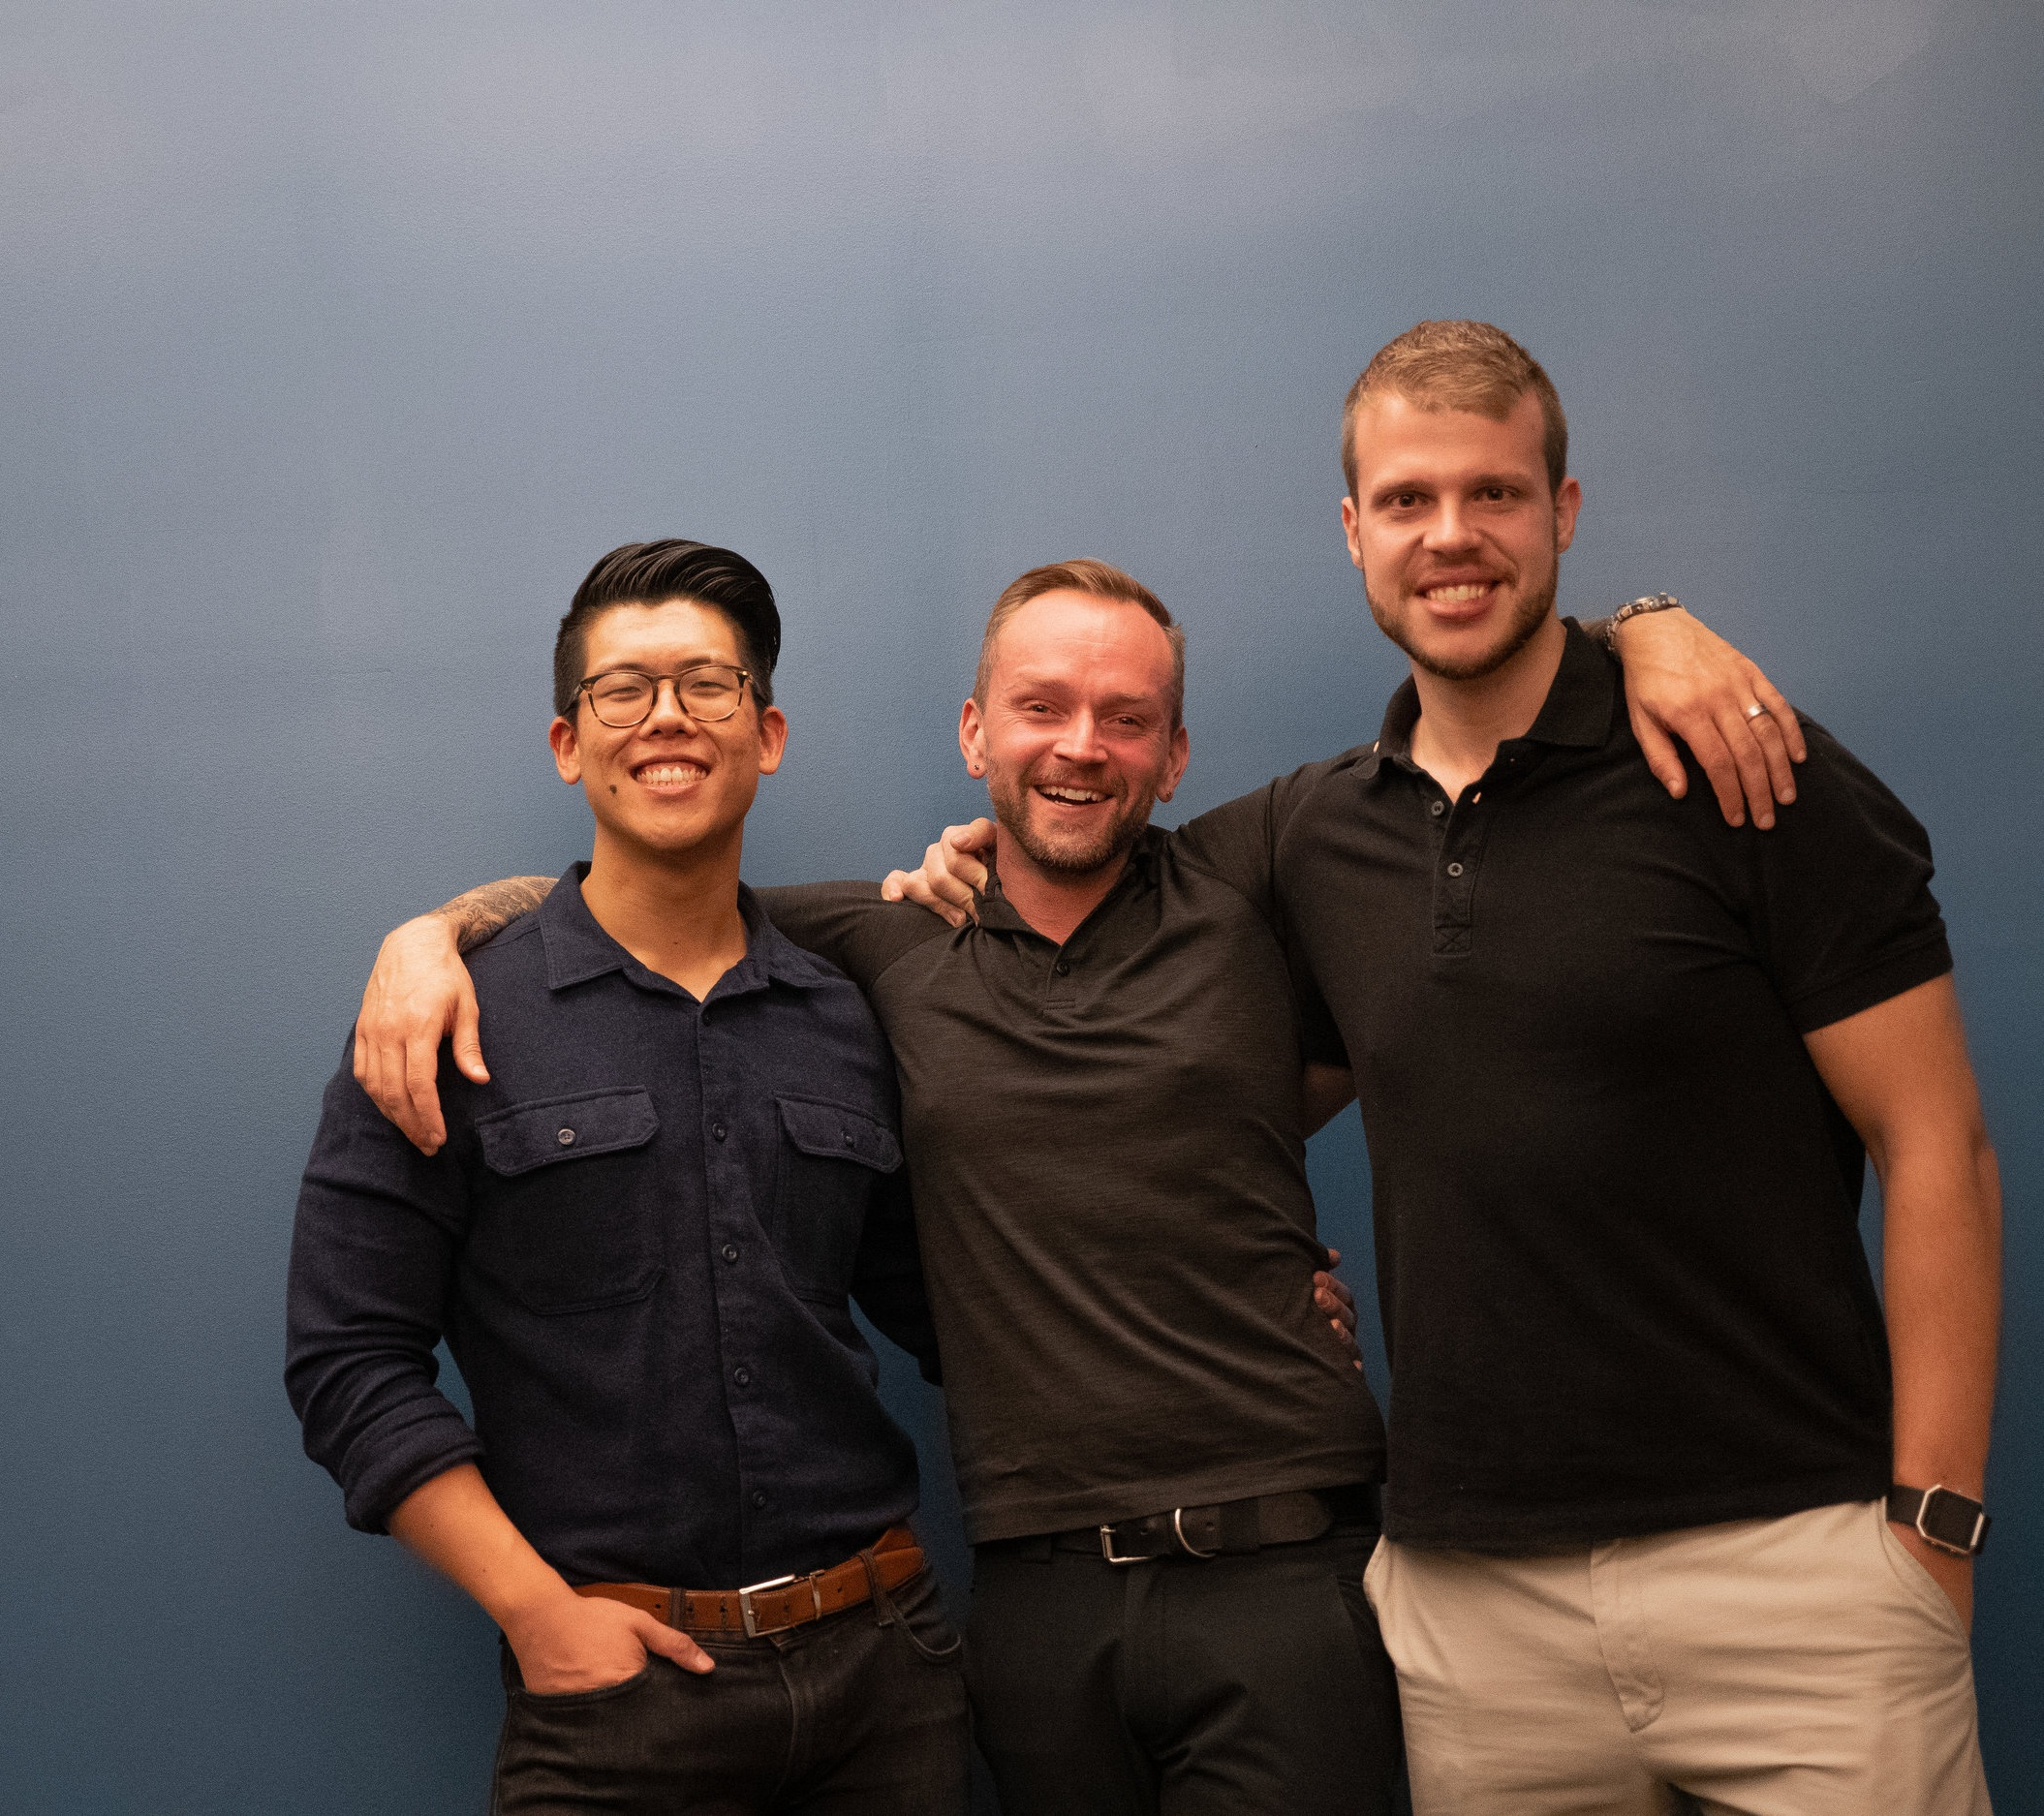 - Co-Founders Mike, Chad, and Joe